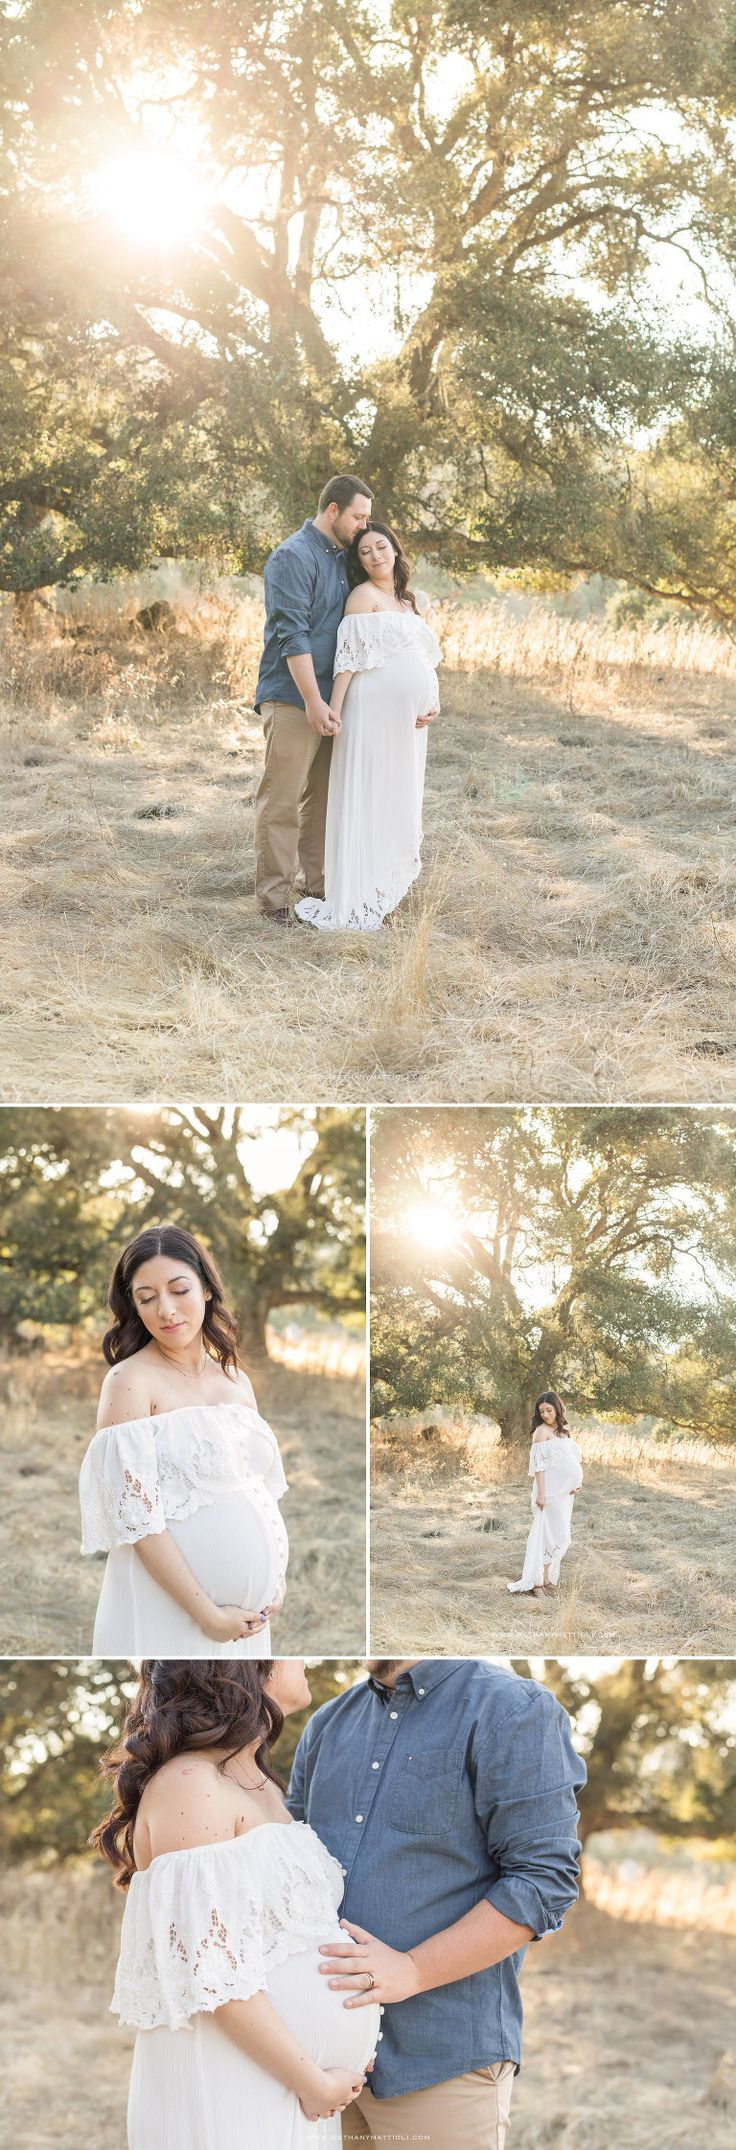 Romantic Outdoor Maternity Photography | Pregnancy Photography Bay Area | Bethany Mattioli Photography